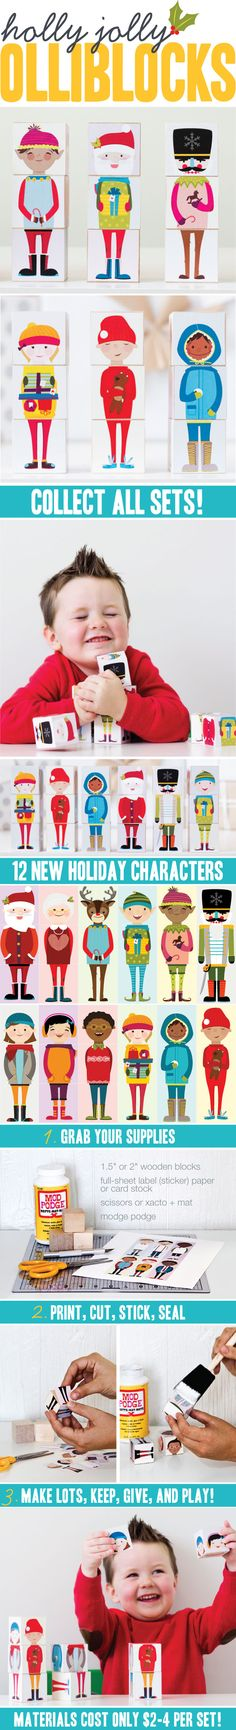 Hooray for winter! Winter and Christmas Olliblocks are here! This set includes Winter Kids and Holly Jolly Olliblocks! The set comes with 12 characters. Christmas Activities, Activities For Kids, Homemade Christmas, Christmas Holidays, Noyeux Joel, Homemade Gifts, Diy Gifts, Holiday Crafts, Holiday Fun